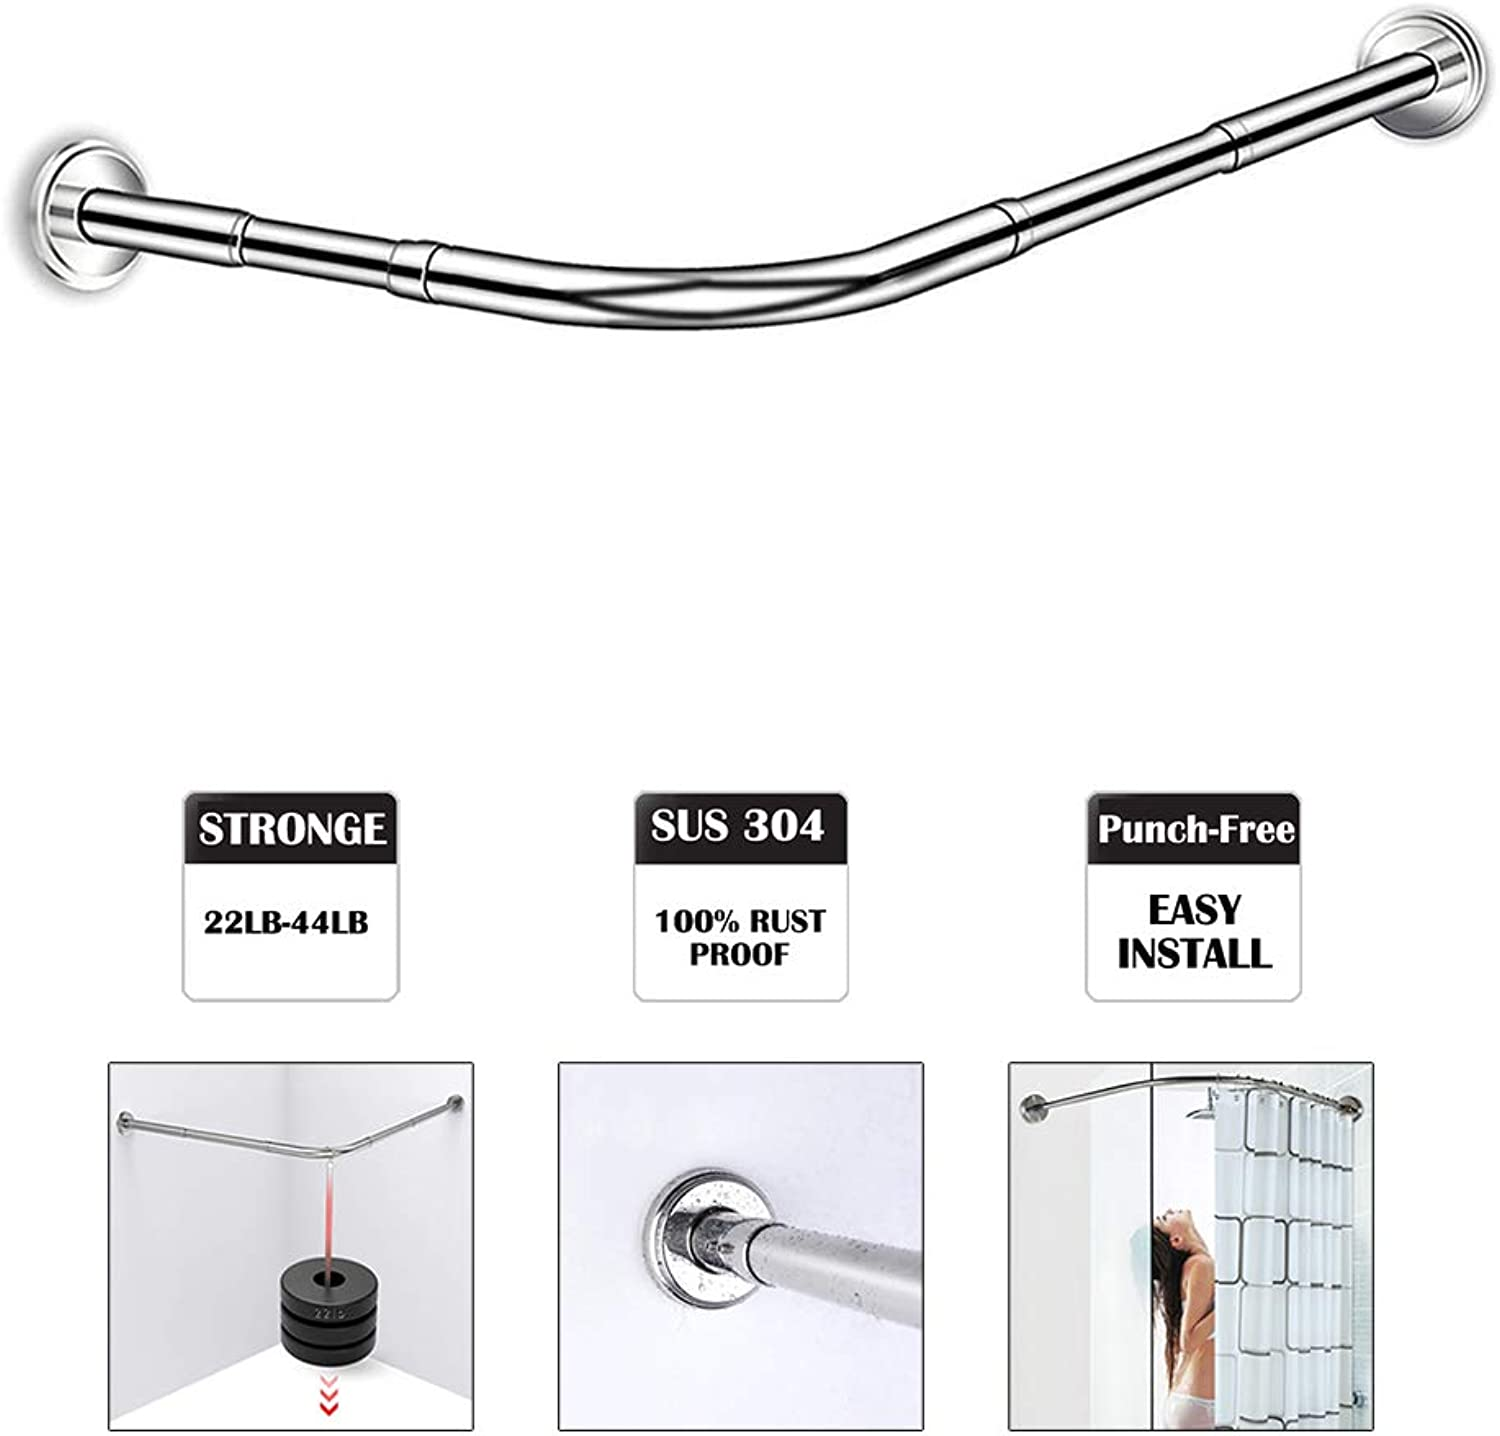 Punch-Free Stretchable Shower Curtain Rod,304 Stainless L Shaped 27.55-39.37  x35.43-47.24 ,for Bathroom, Clothing Store